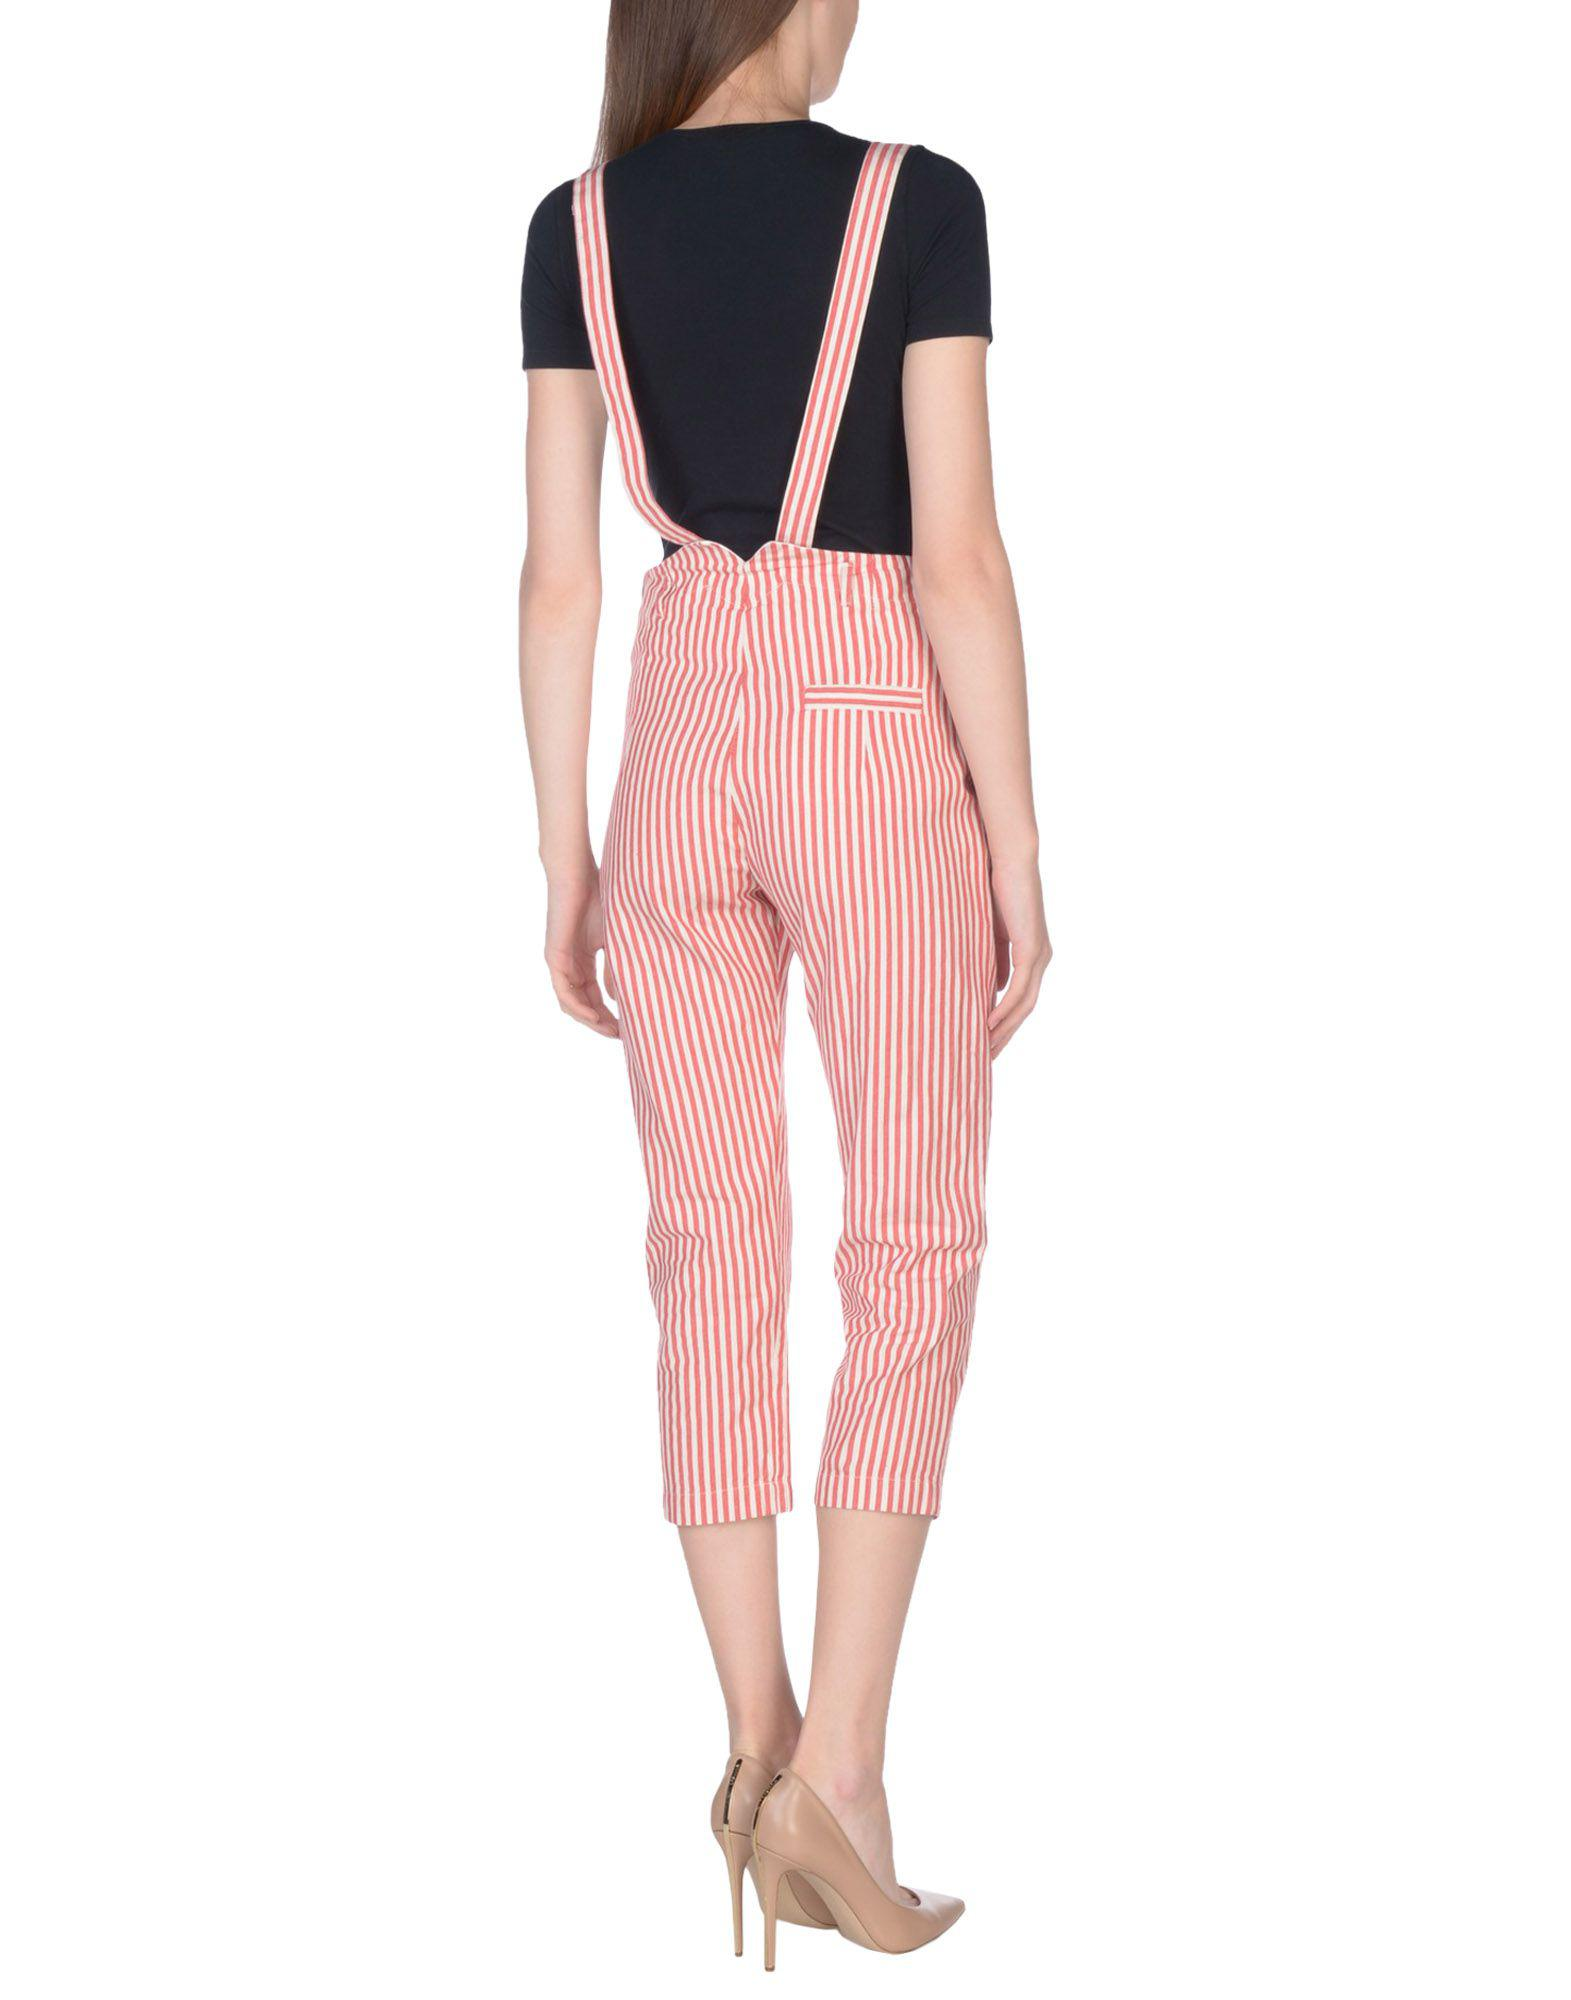 Cheap Sale Inexpensive With Credit Card Online DUNGAREES - Dungarees Shirtaporter Classic Sale Online Cheap Price Pre Order prrkUF